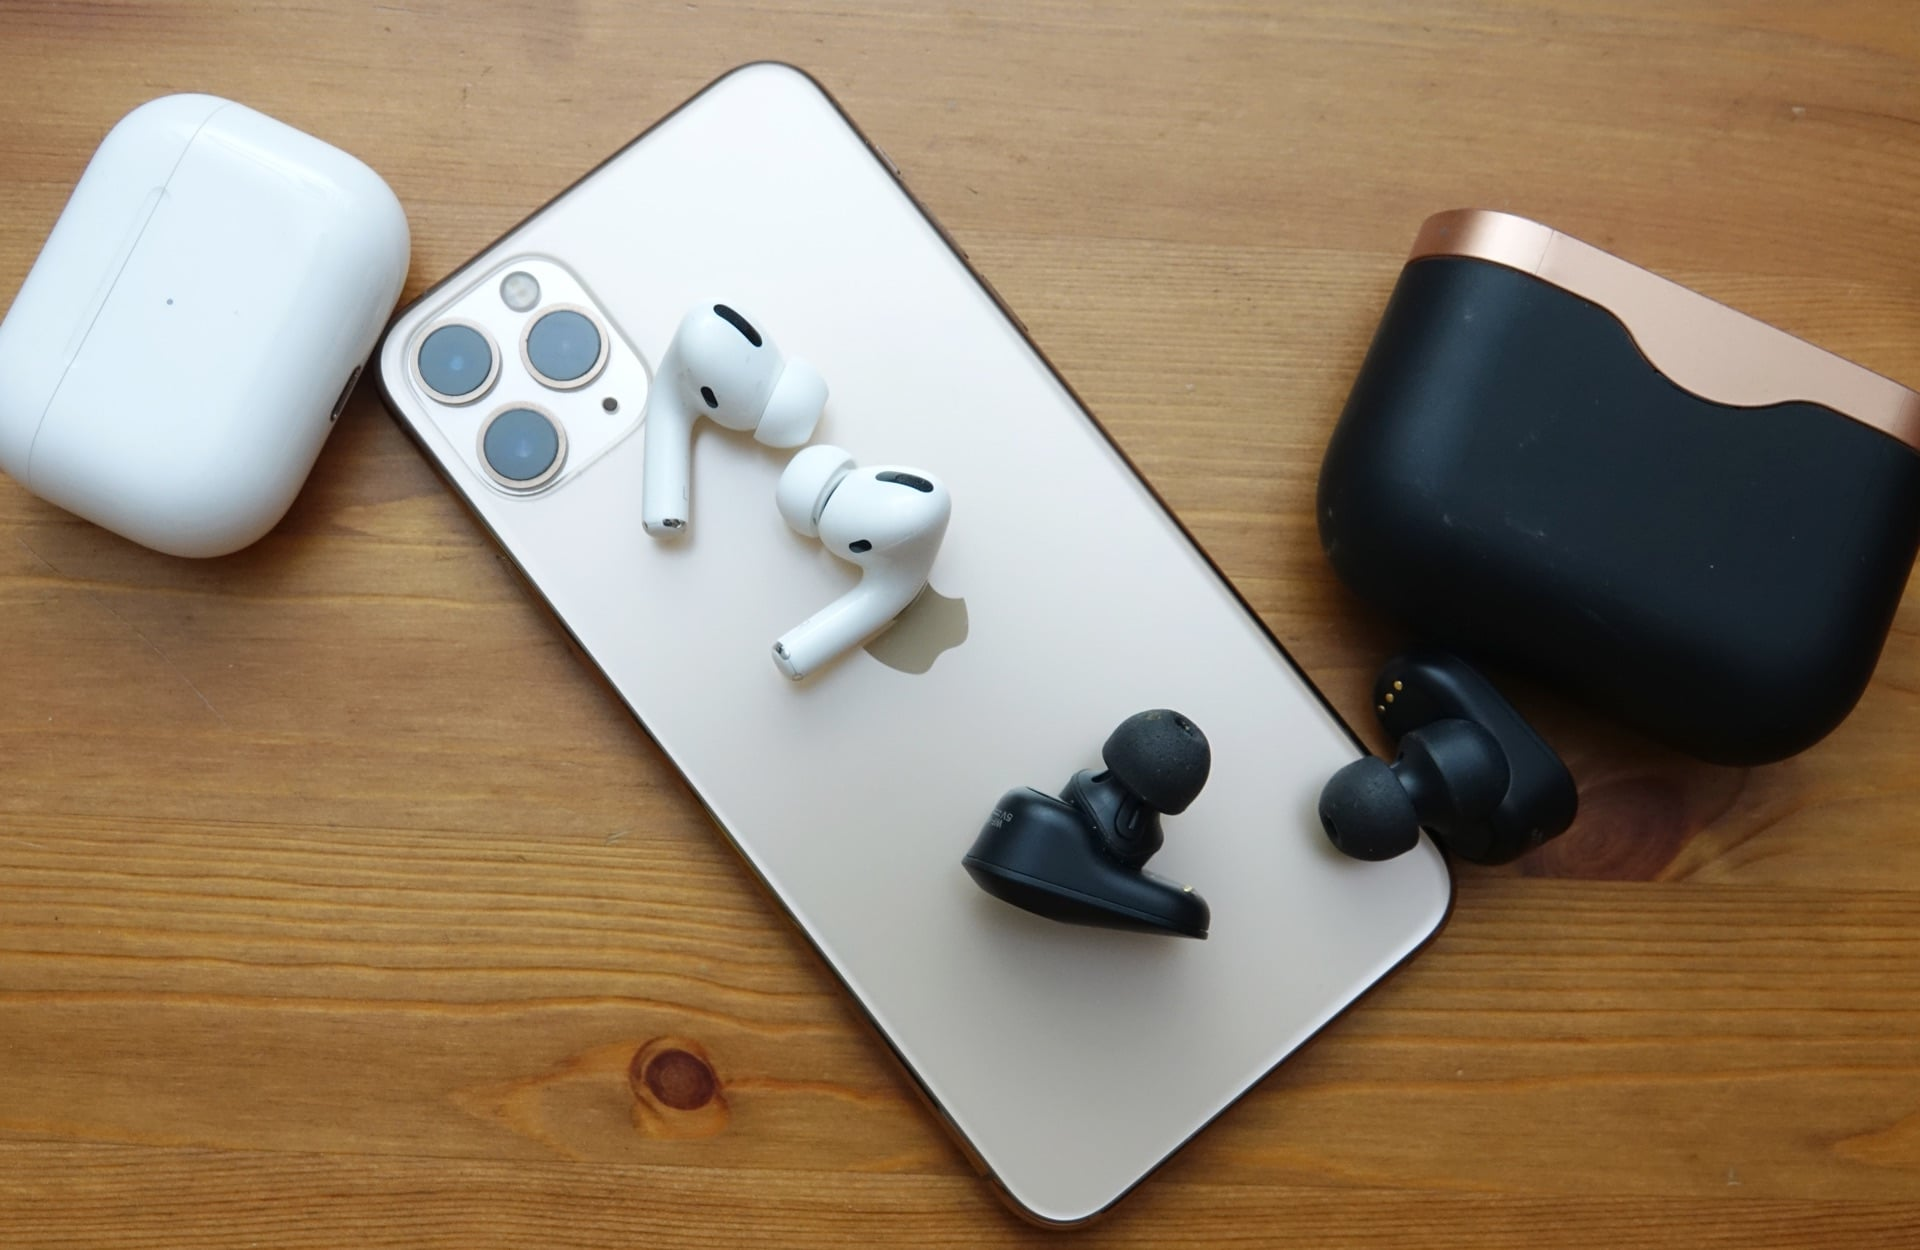 Apple AirPods Pro vs Sony WF-1000XM3